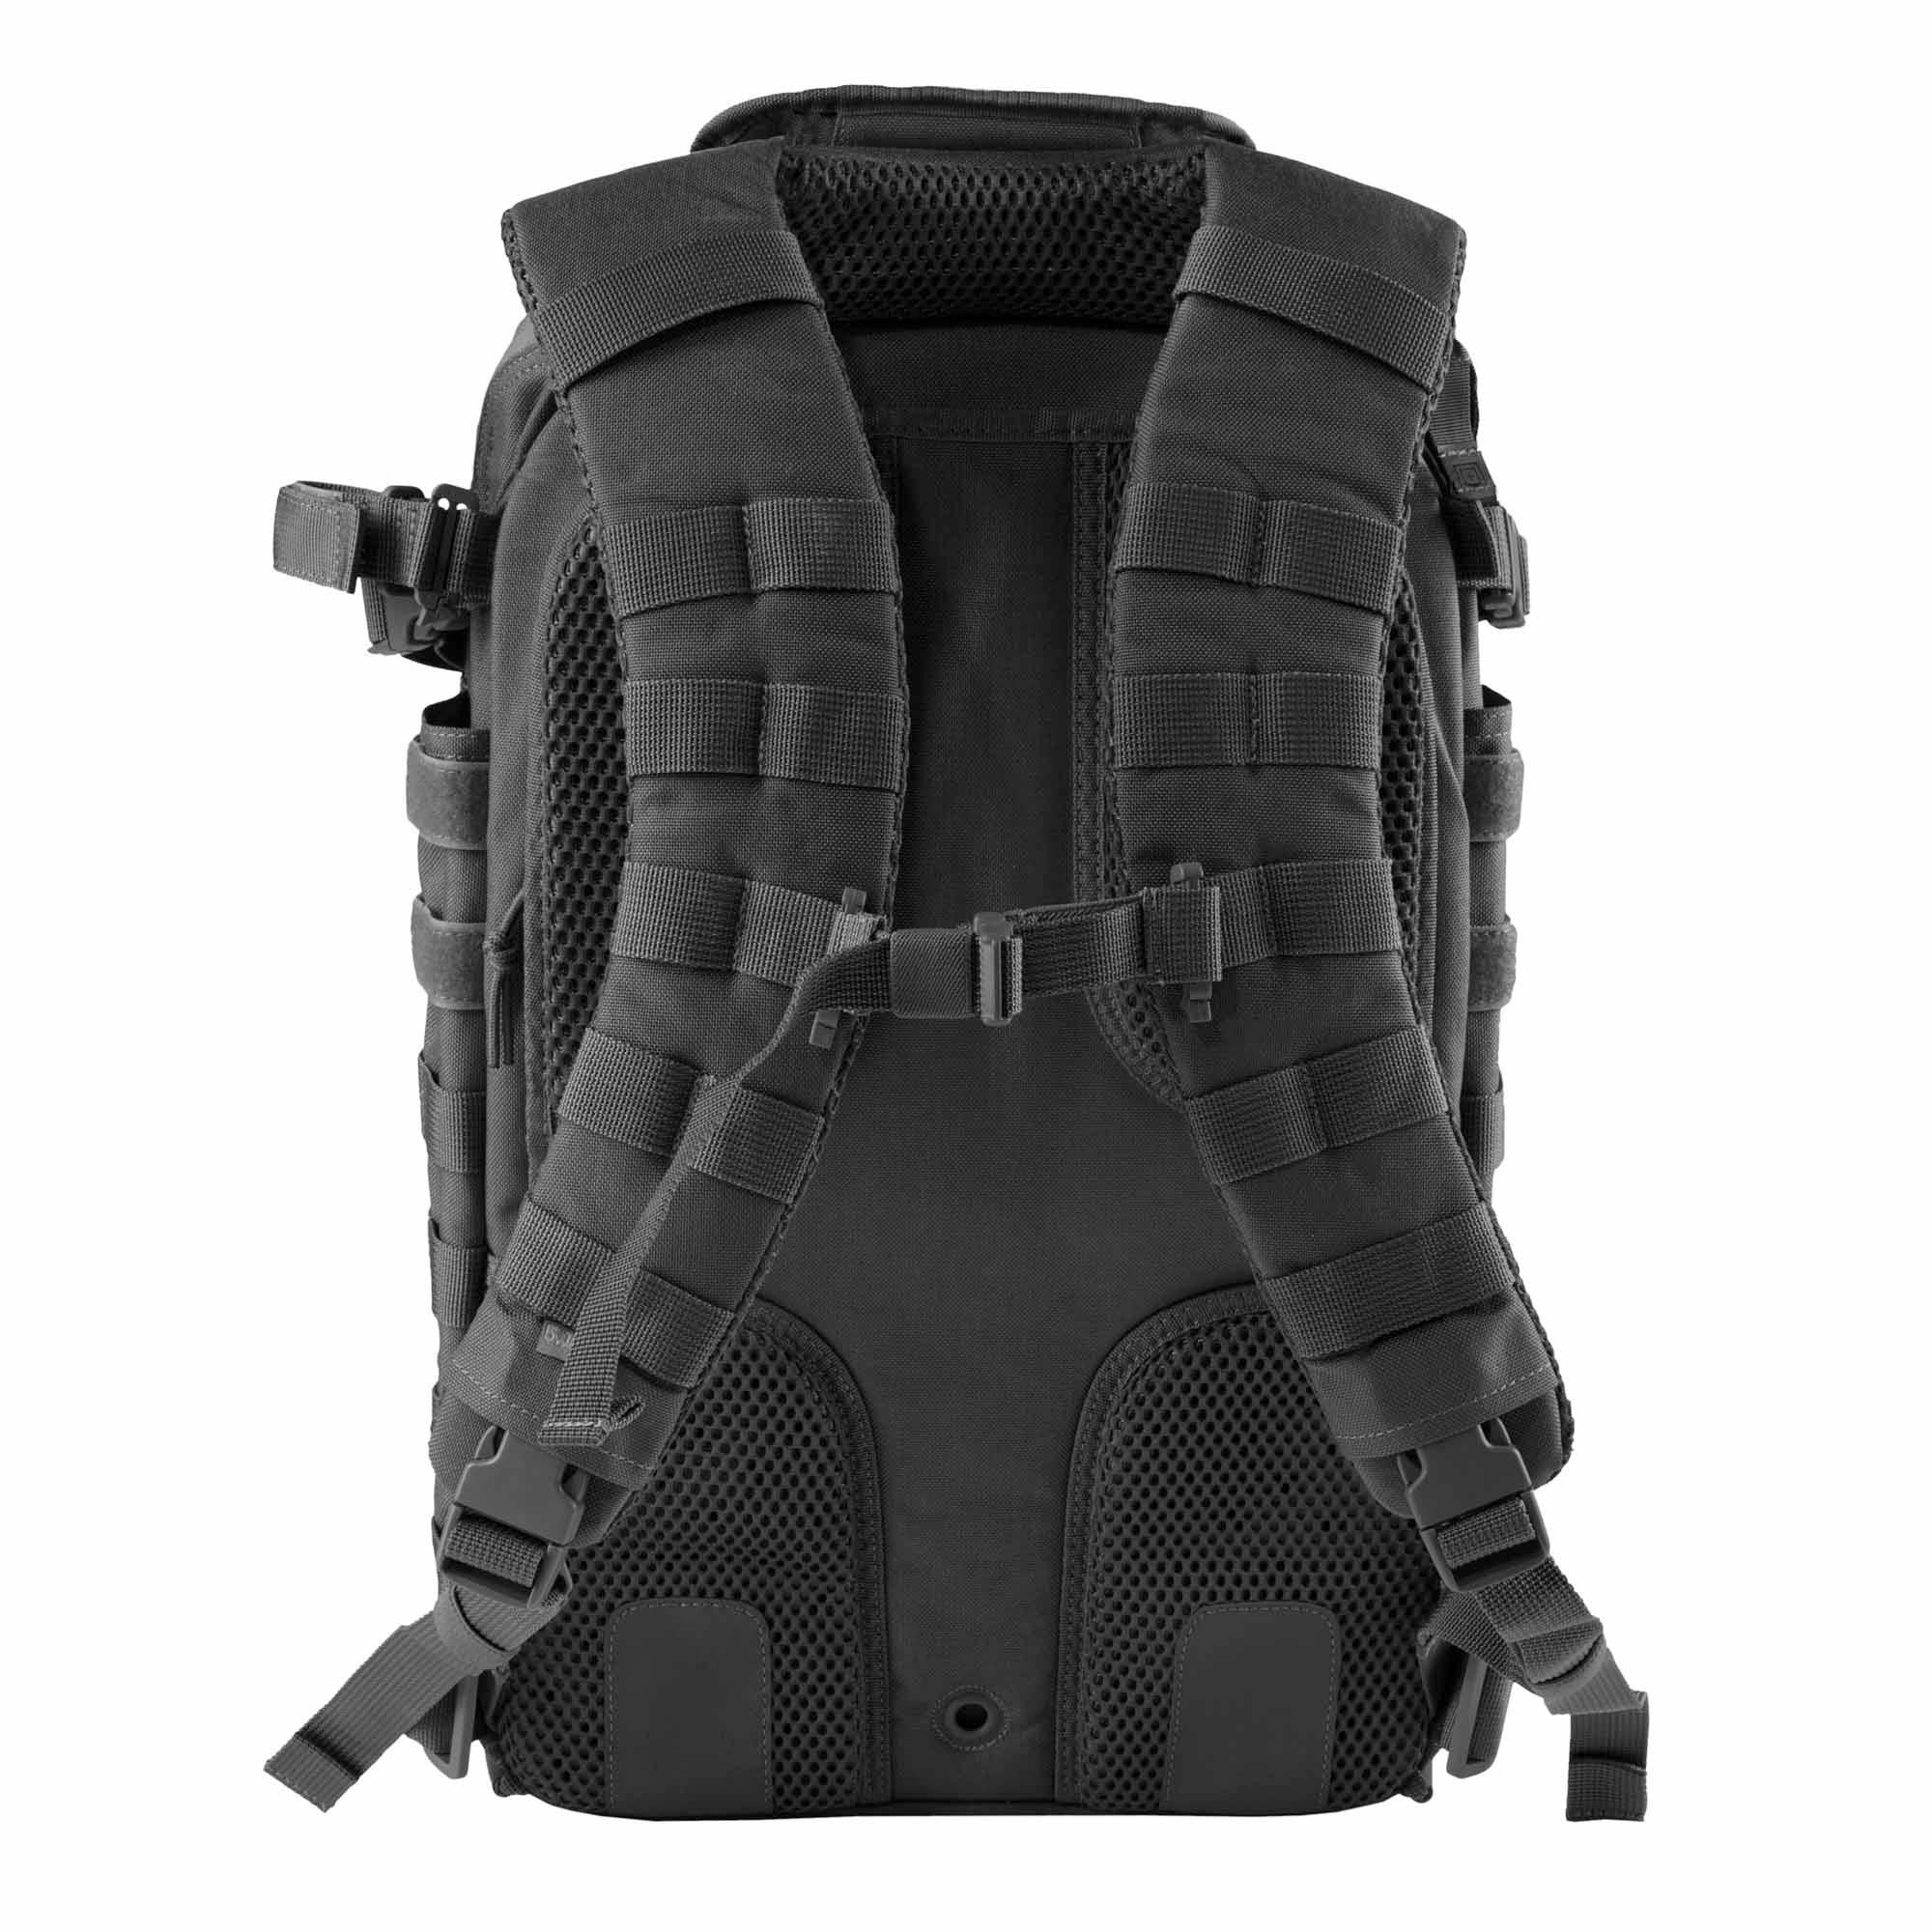 91c0fc49e3e 5.11 Tactical All Hazards Prime | 56997 | 911supply